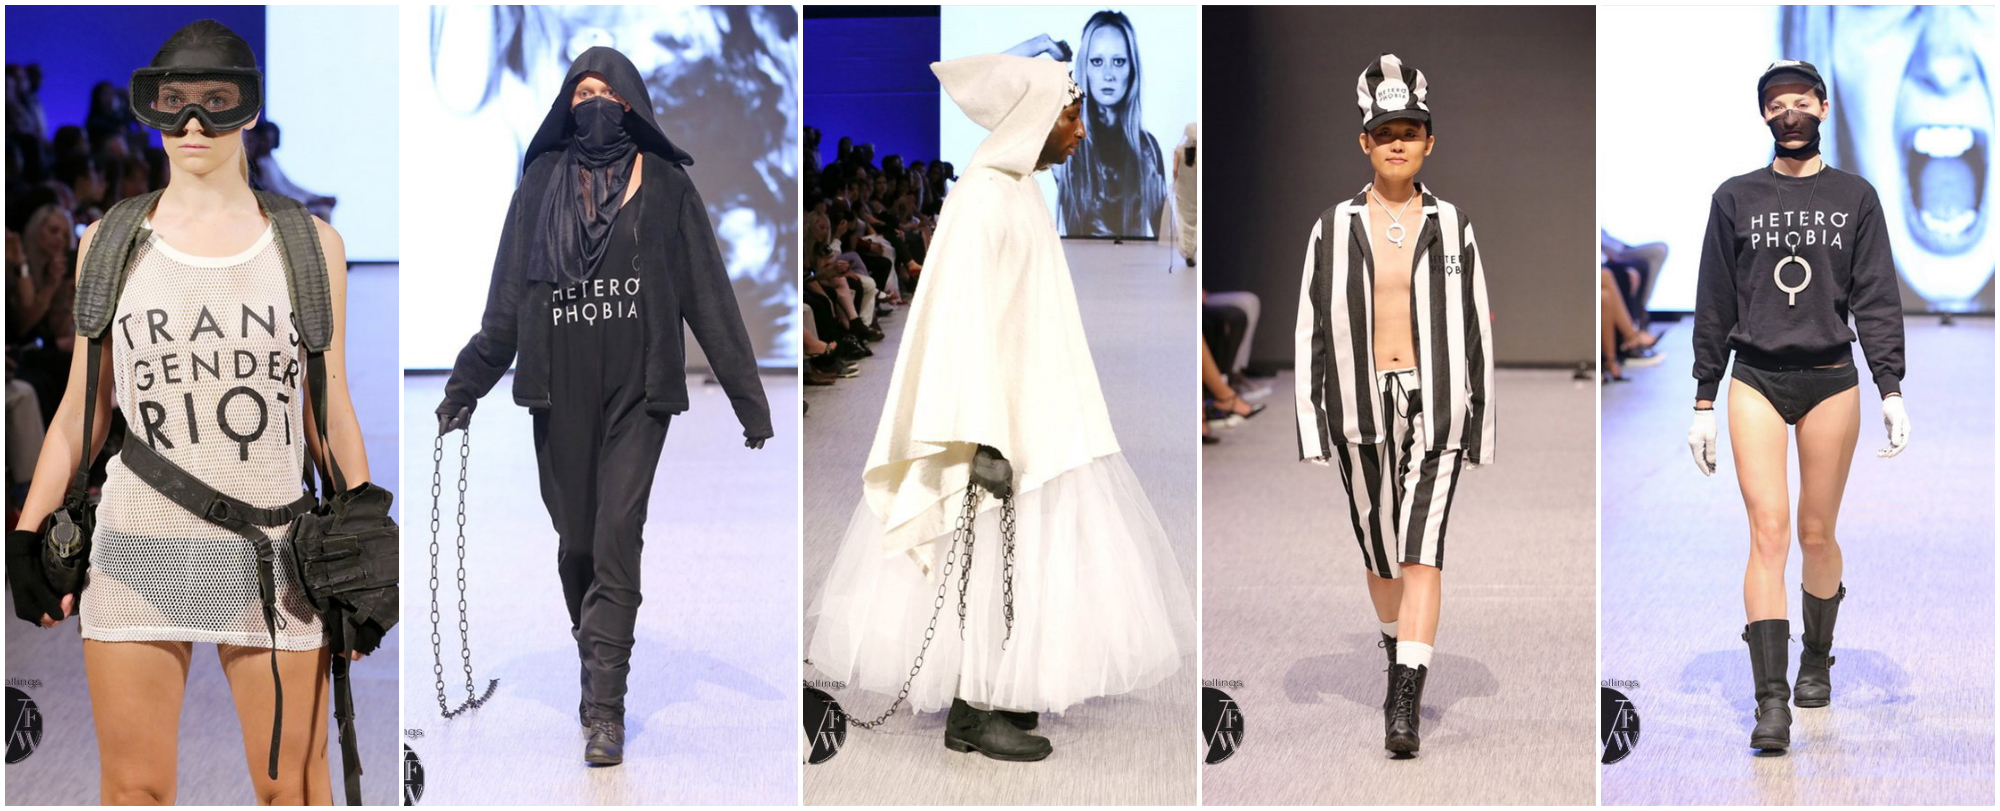 Photos by Dale Rollings / Vancouver Fashion Week